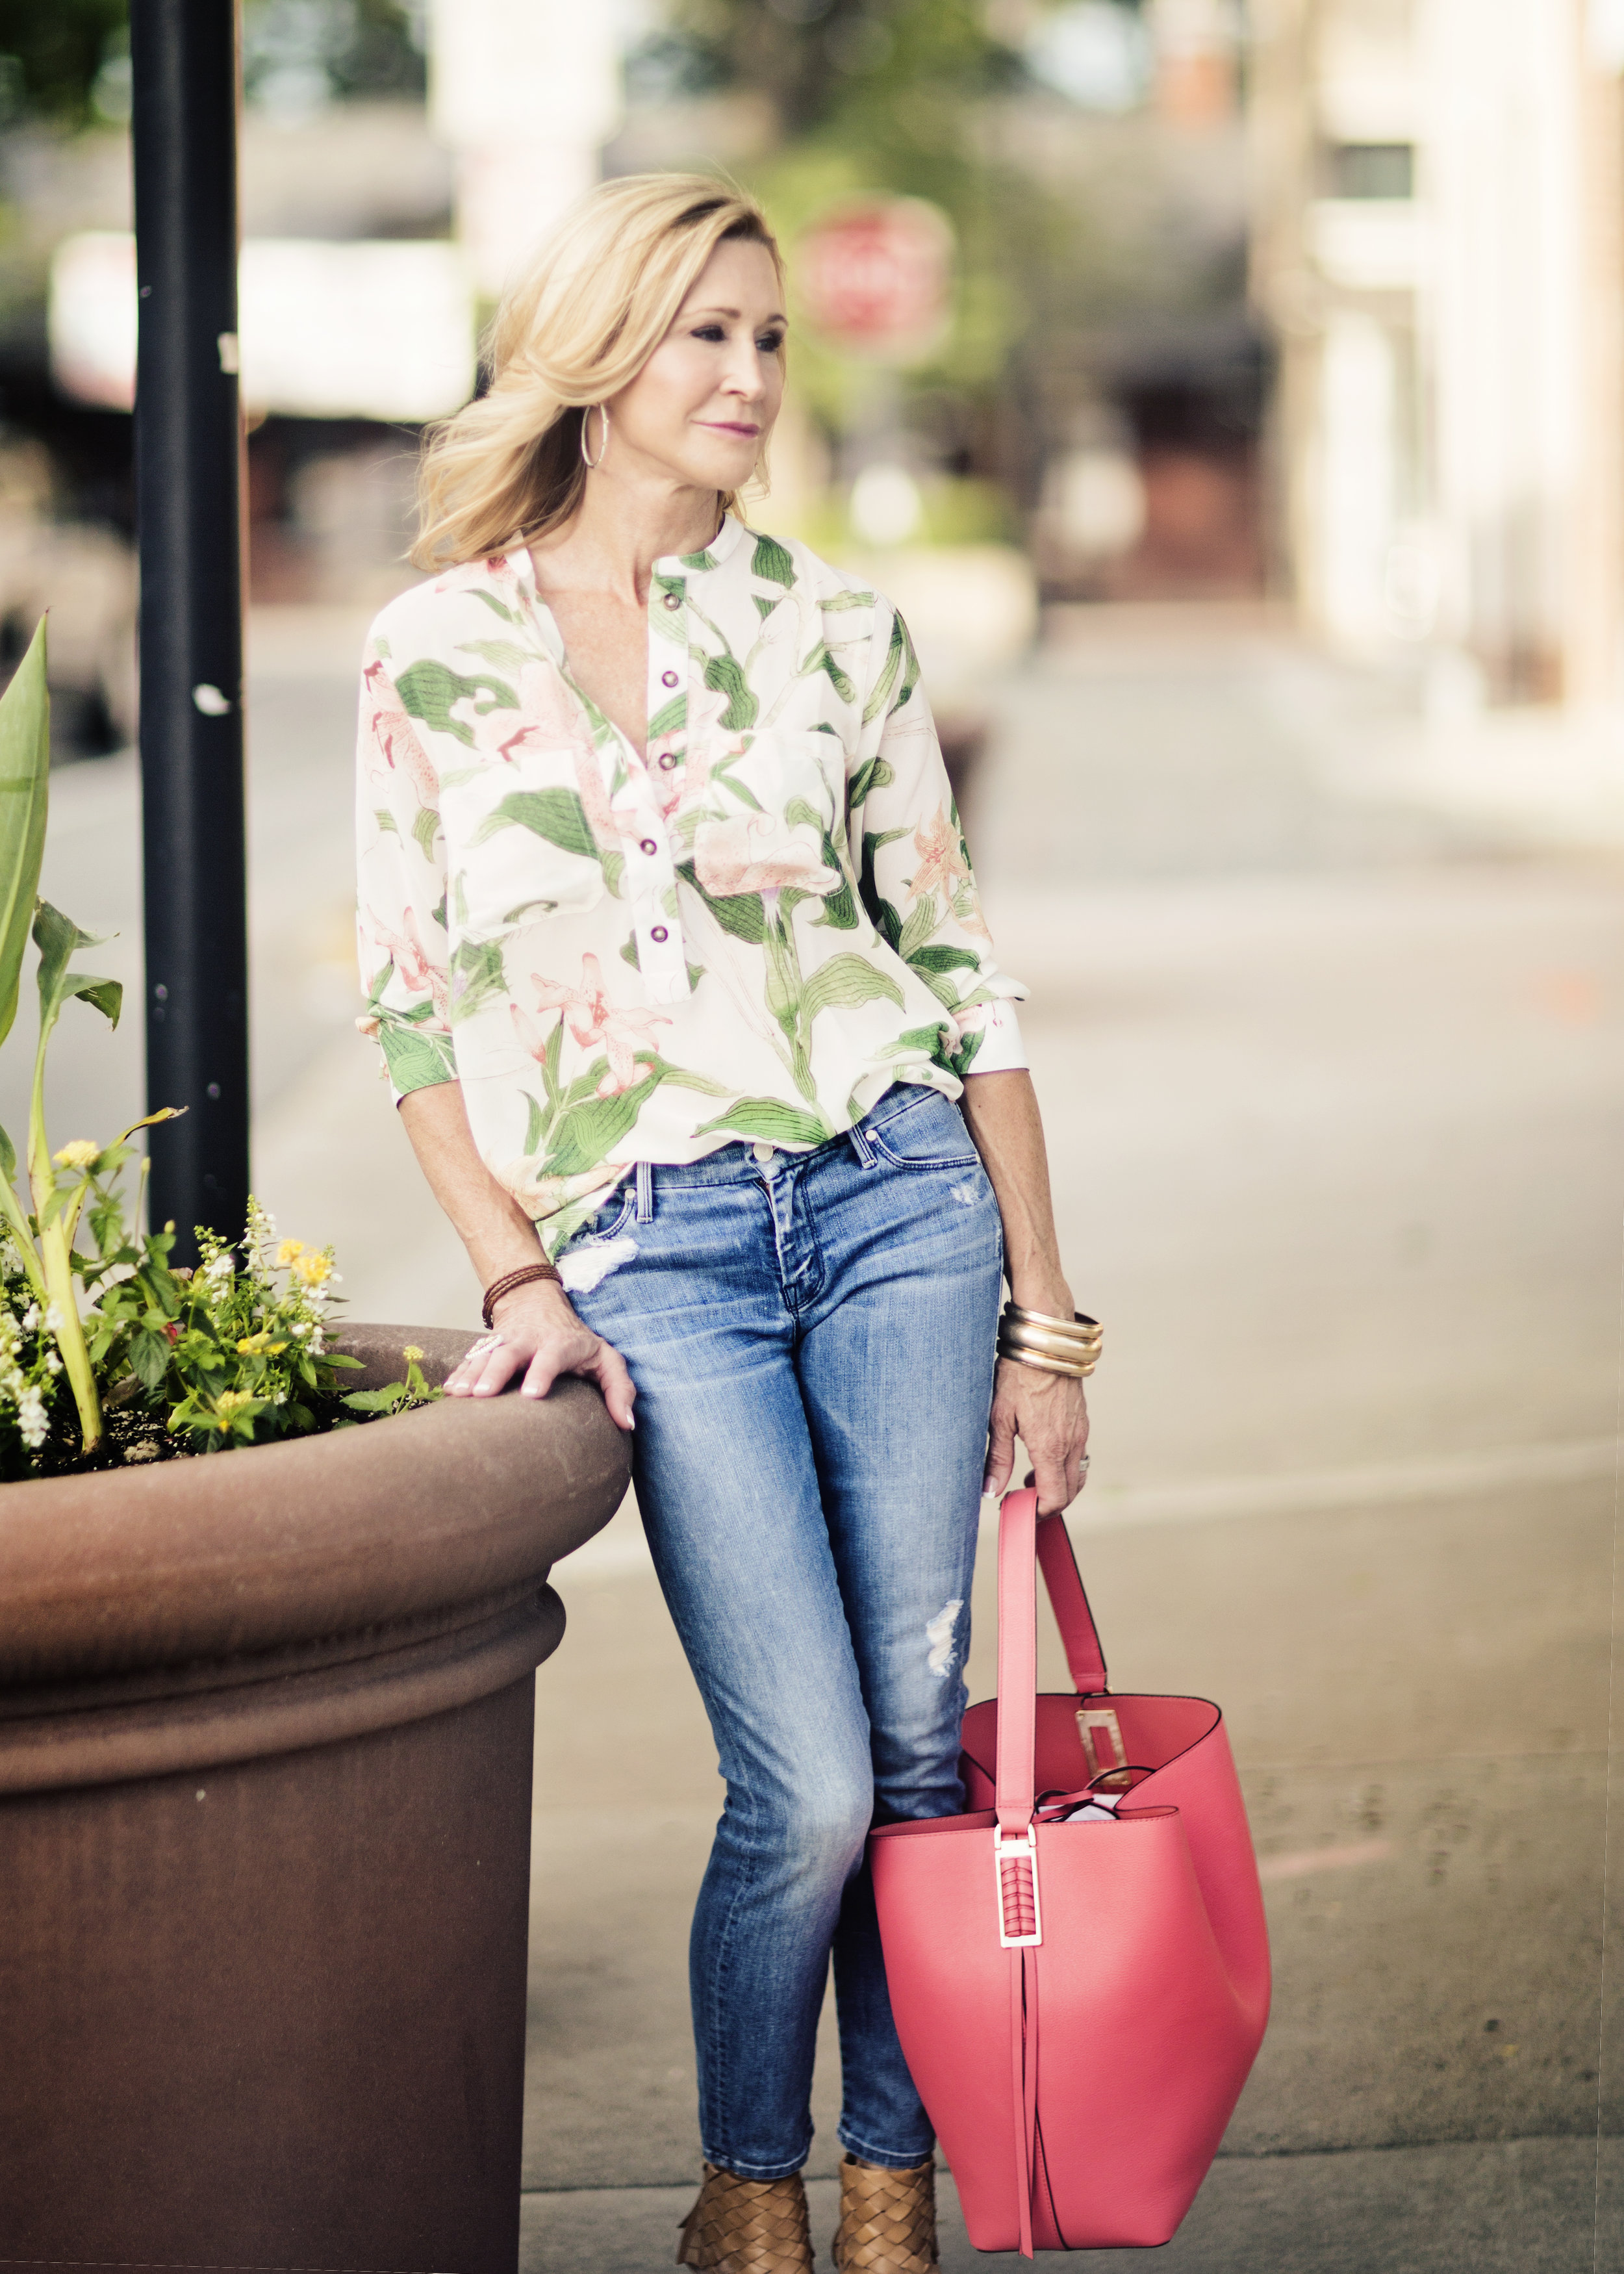 Floral Blouse styled with jeans